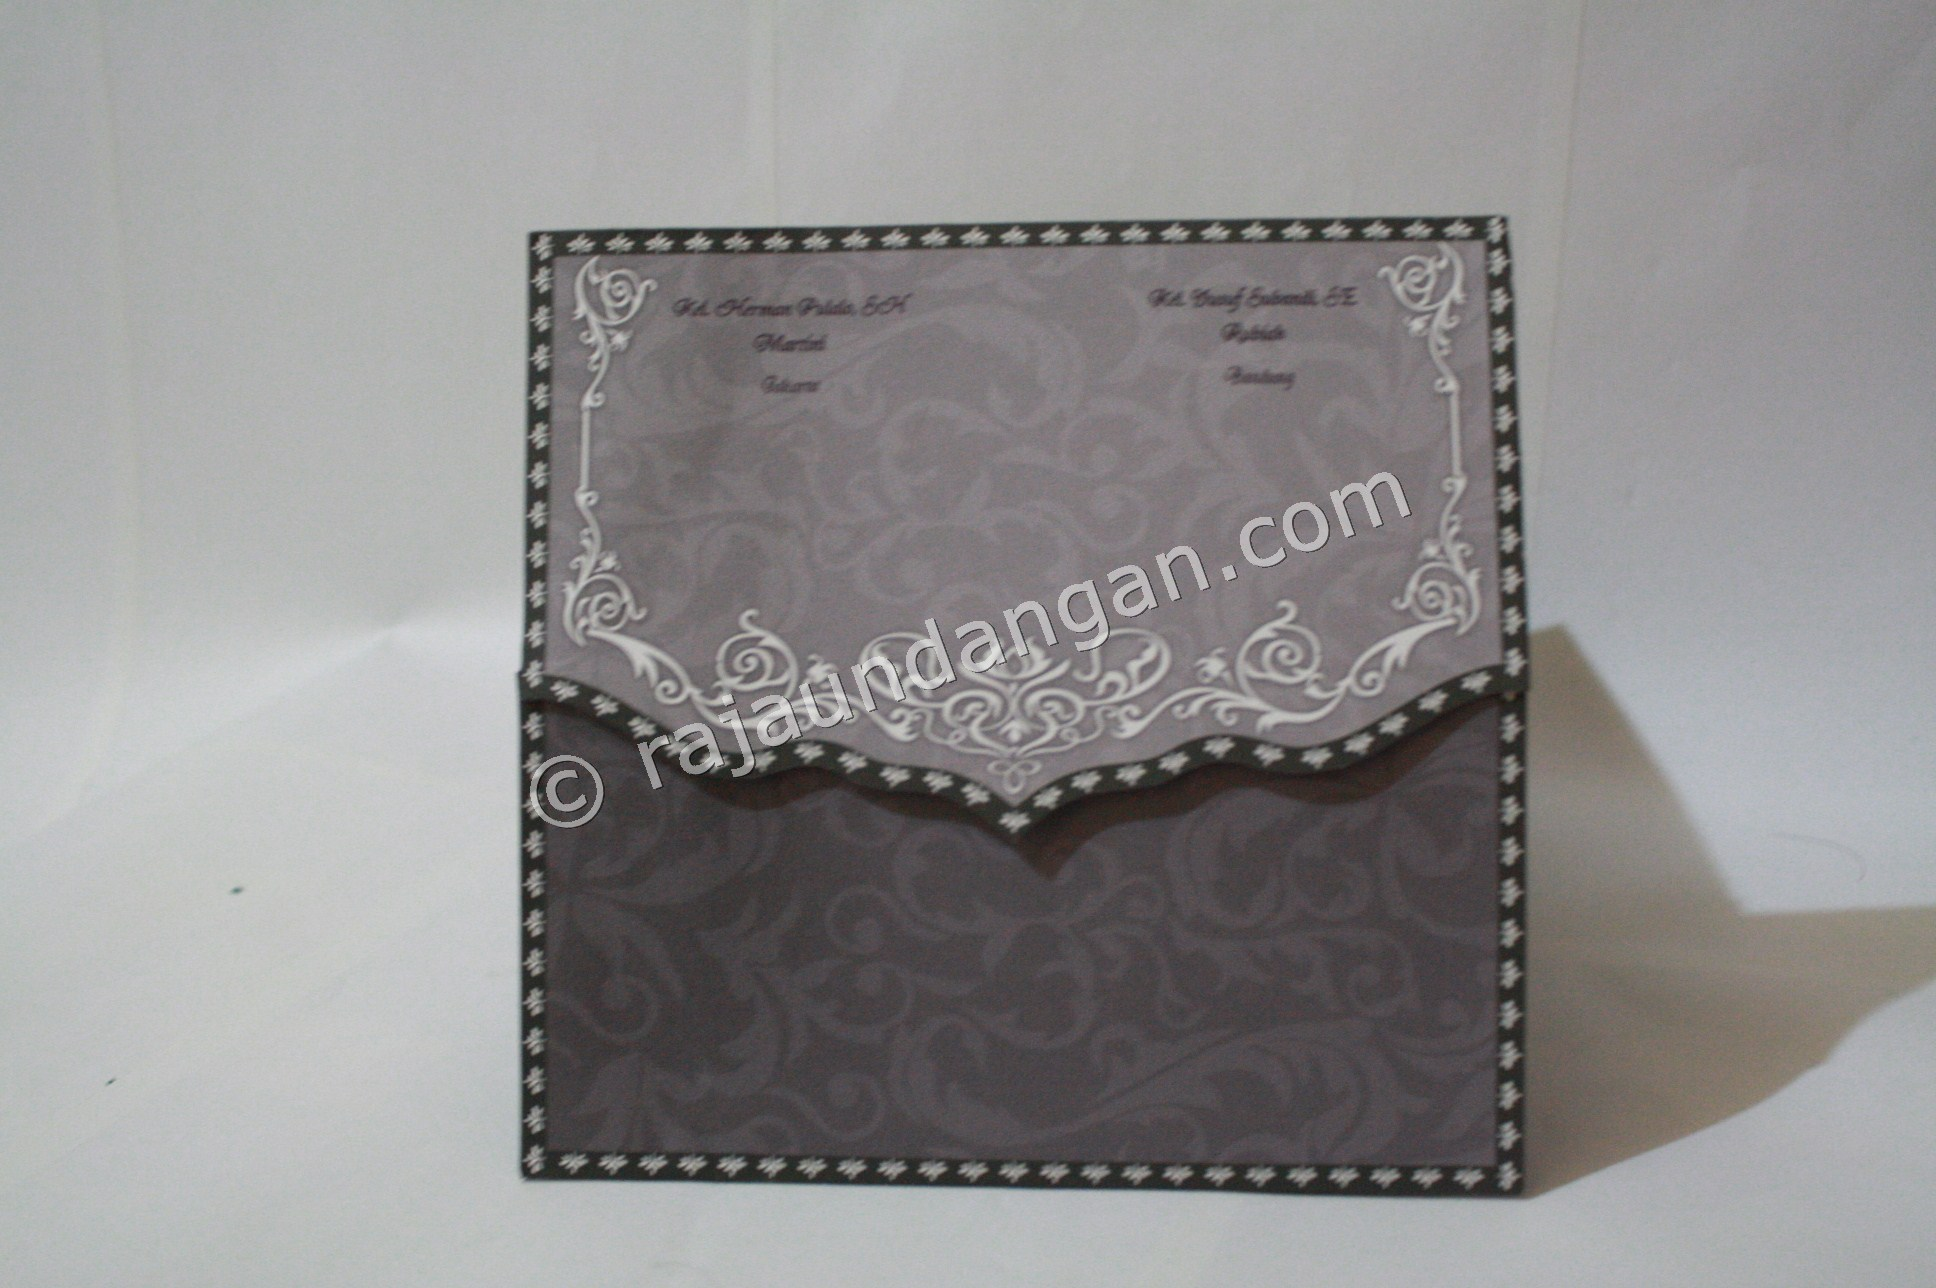 Undangan Pernikahan Softcover ED 27 3 - Pesan Wedding Invitations Simple di Ploso